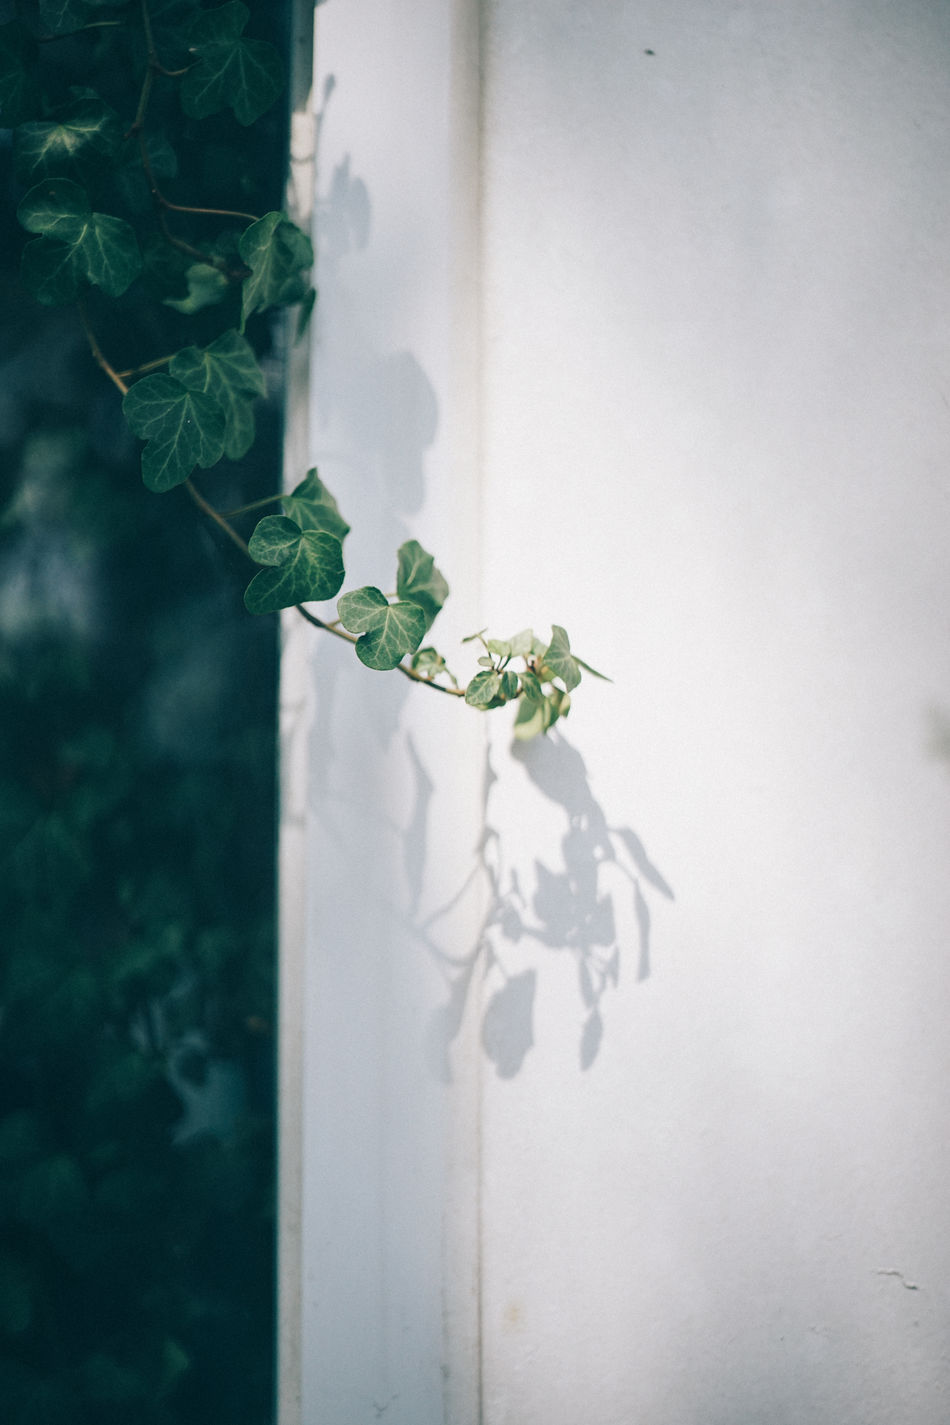 Architecture Close-up Day Fragility Freshness Green Green Color Growth Ivy Ivy Leaves Leaf Nature No People Outdoors Plant Potted Plant Window Resist